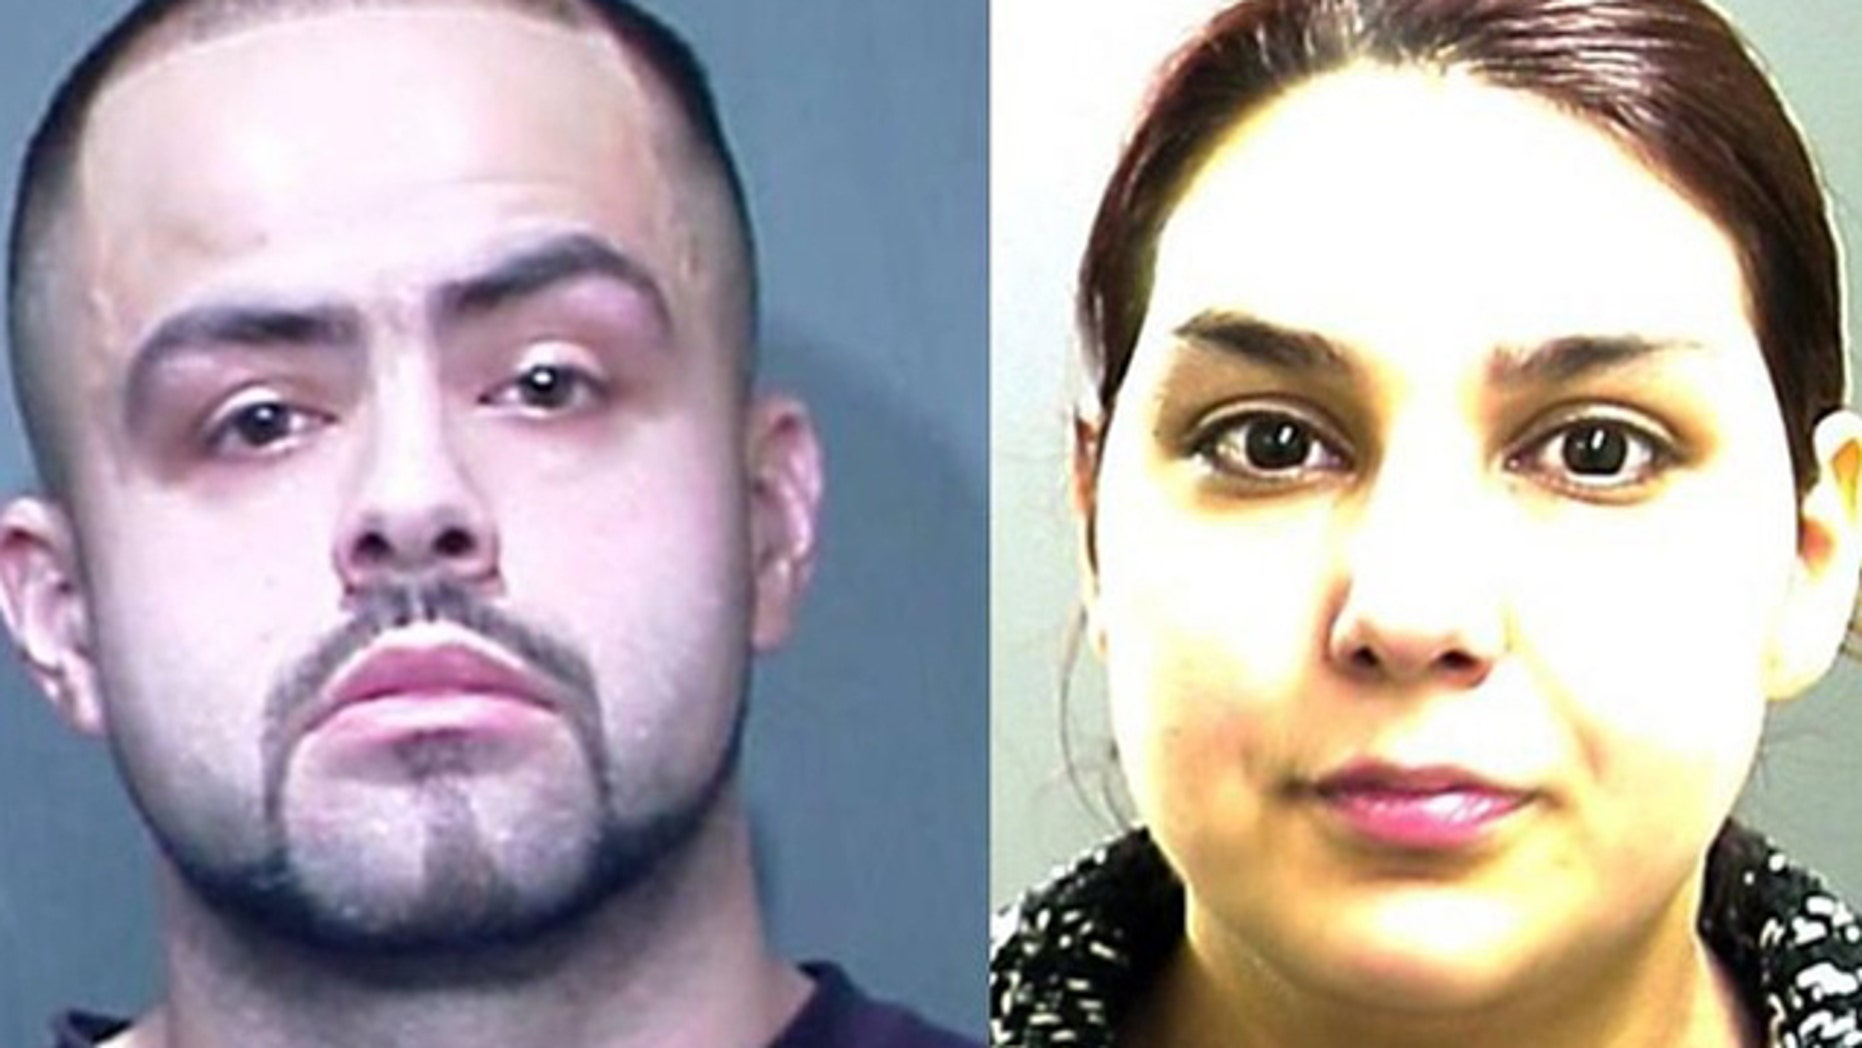 November 27, 2011: This photo shows Cesar Ruiz and Crystal Valdez, who are accused in the murder of Valdez's son Christopher, who was killed on his fourth birthday.